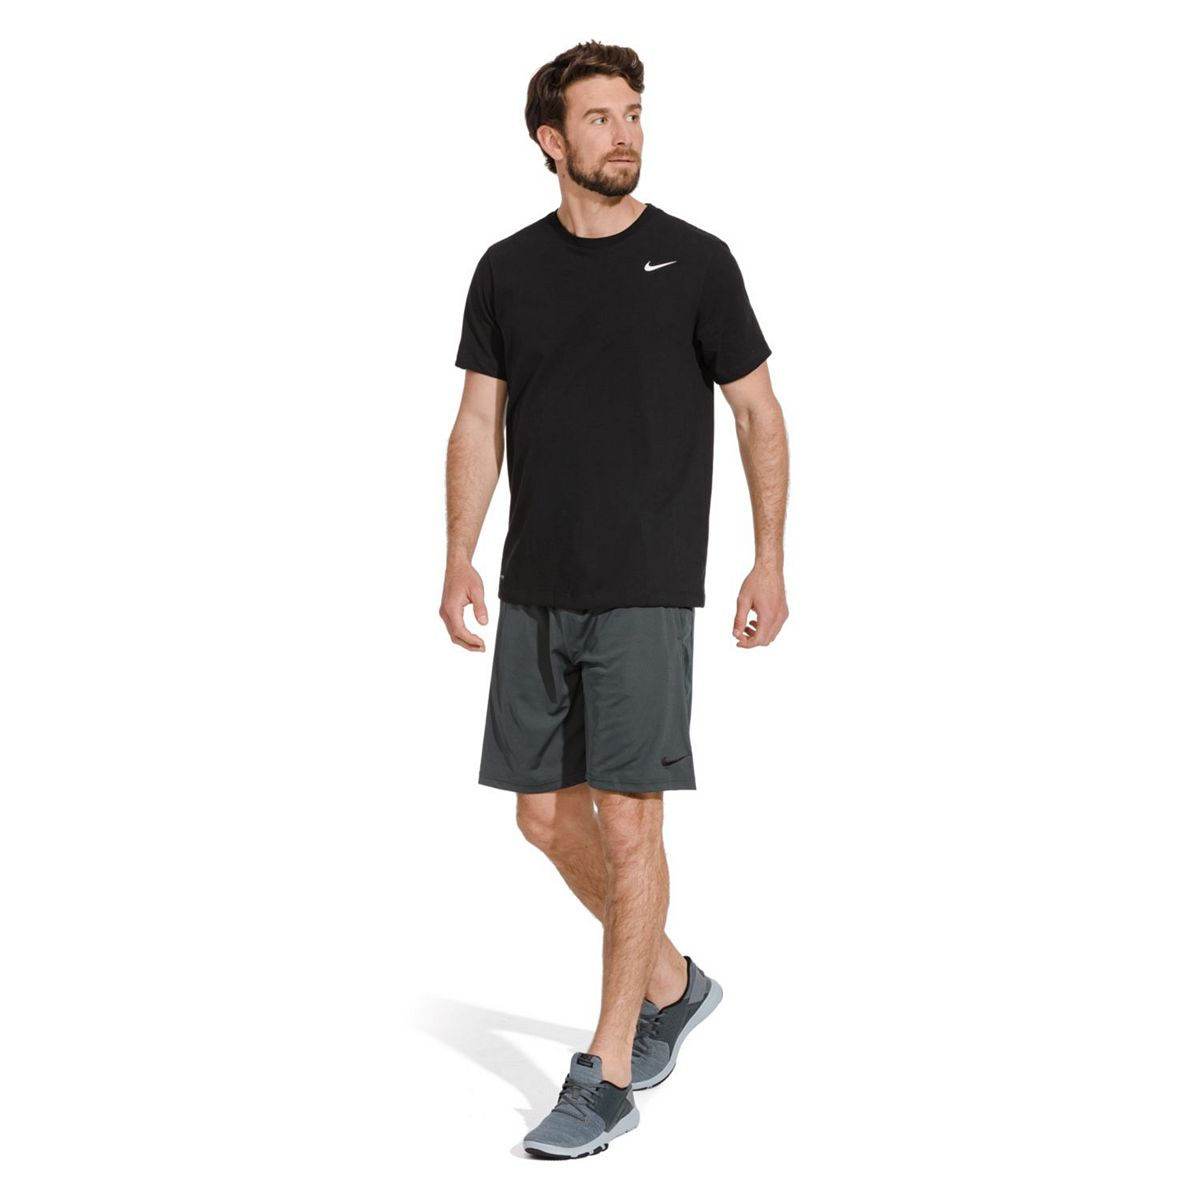 Men's Nike Hybrid Shorts Black Dark Gray g7hQR